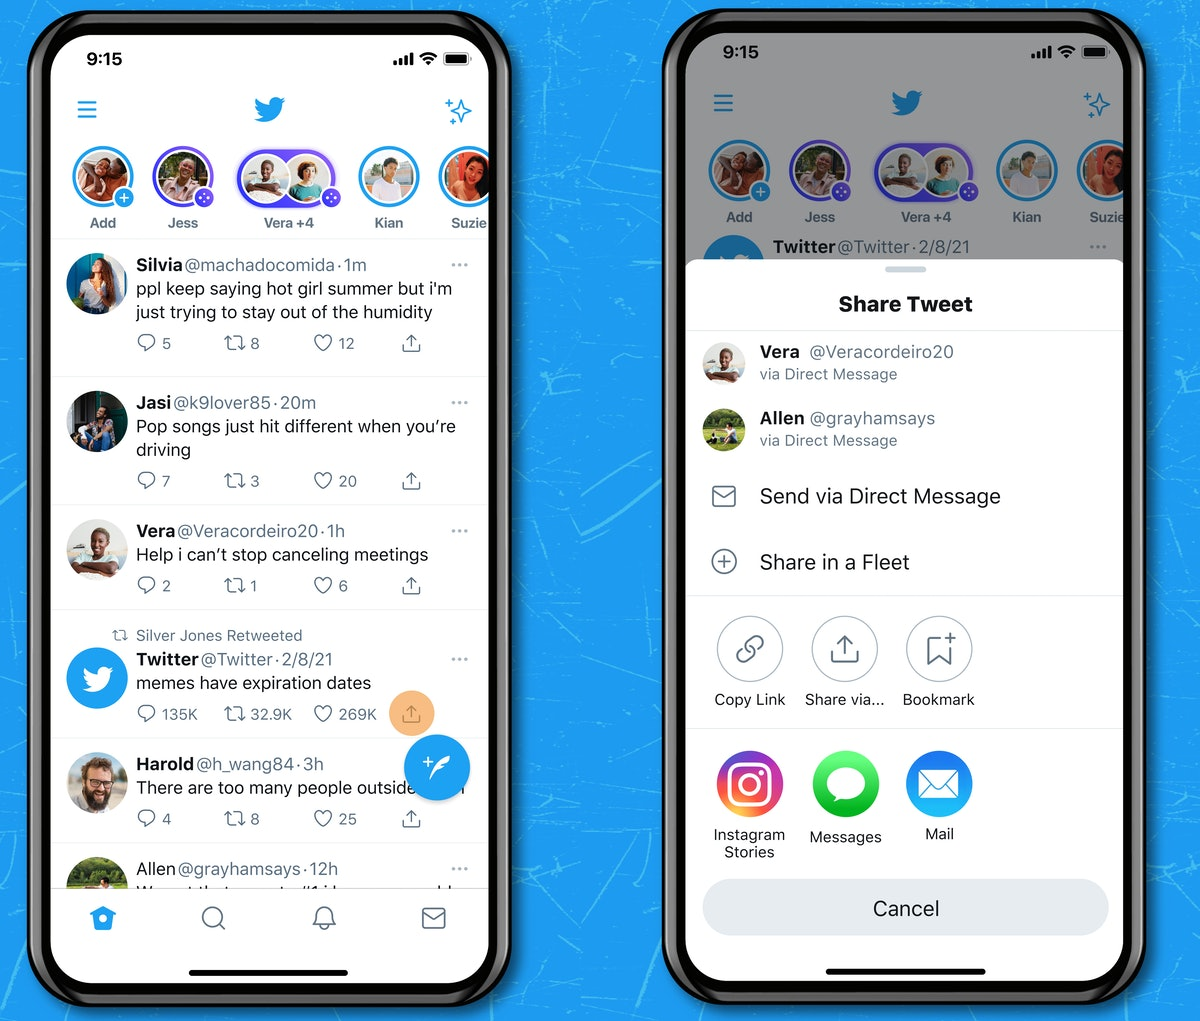 Here's how you can share tweets on Instagram directly from the Twitter iOS app.